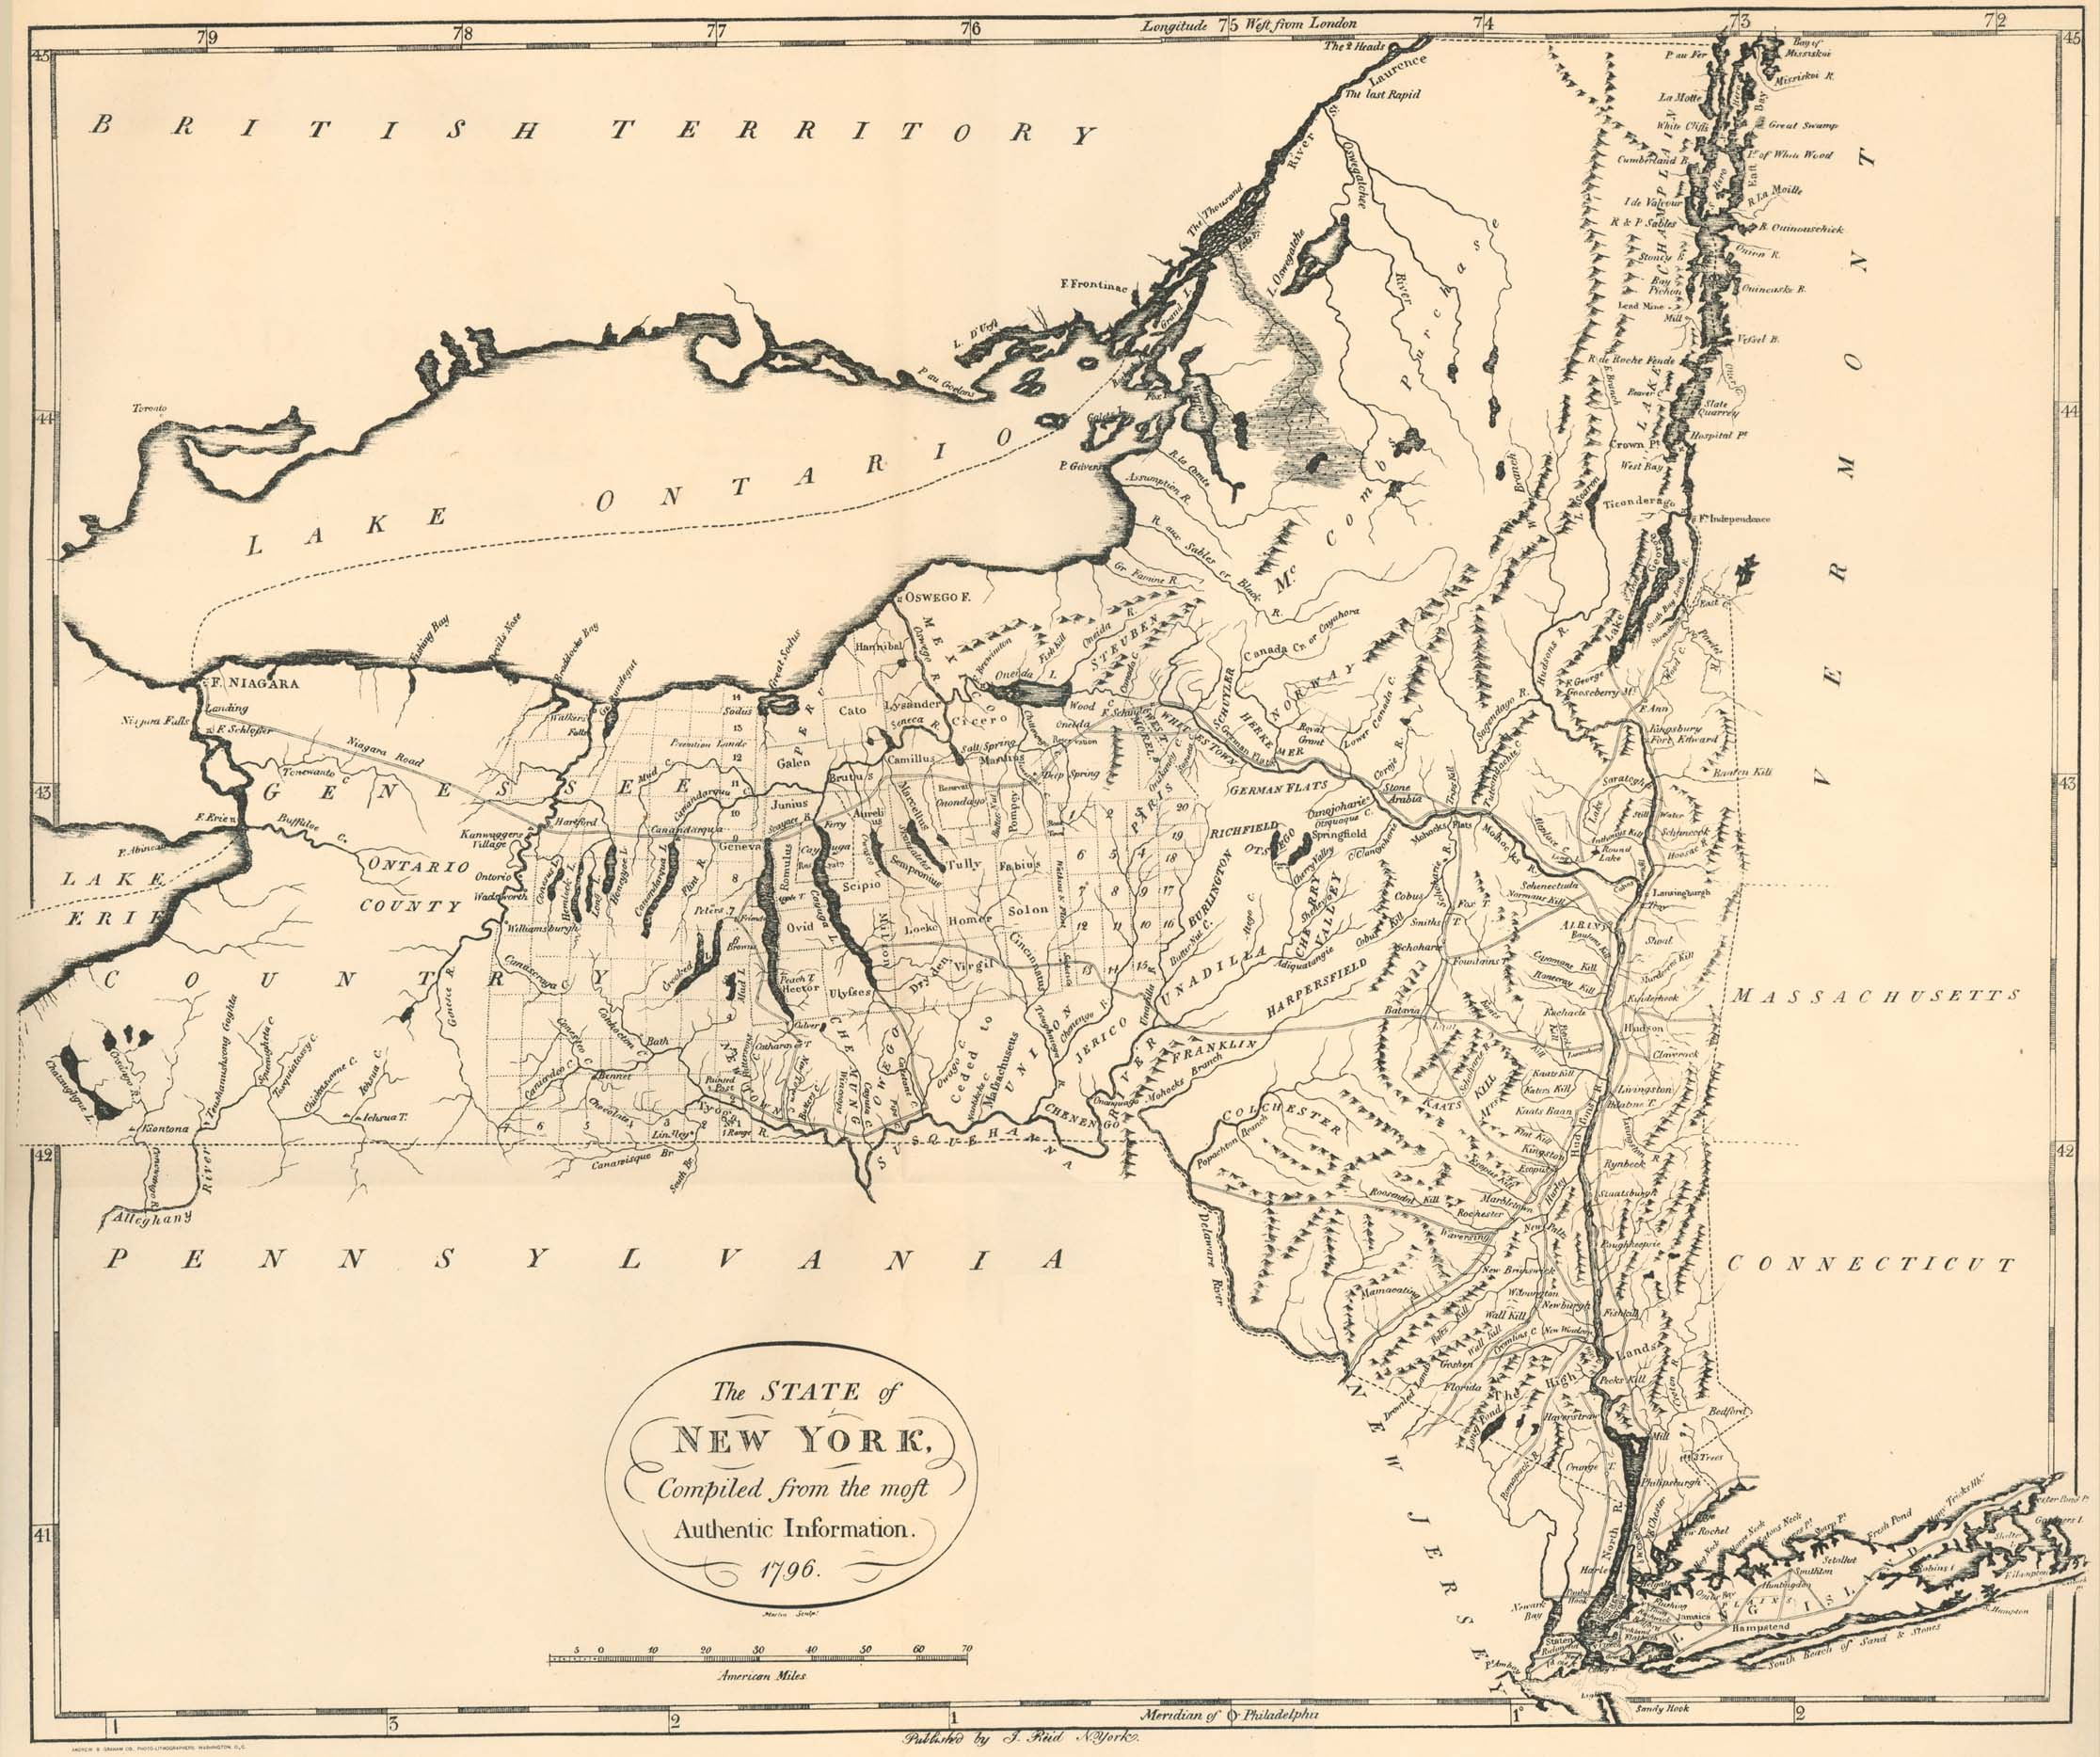 New York Maps - Perry-Castañeda Map Collection - UT Library Online